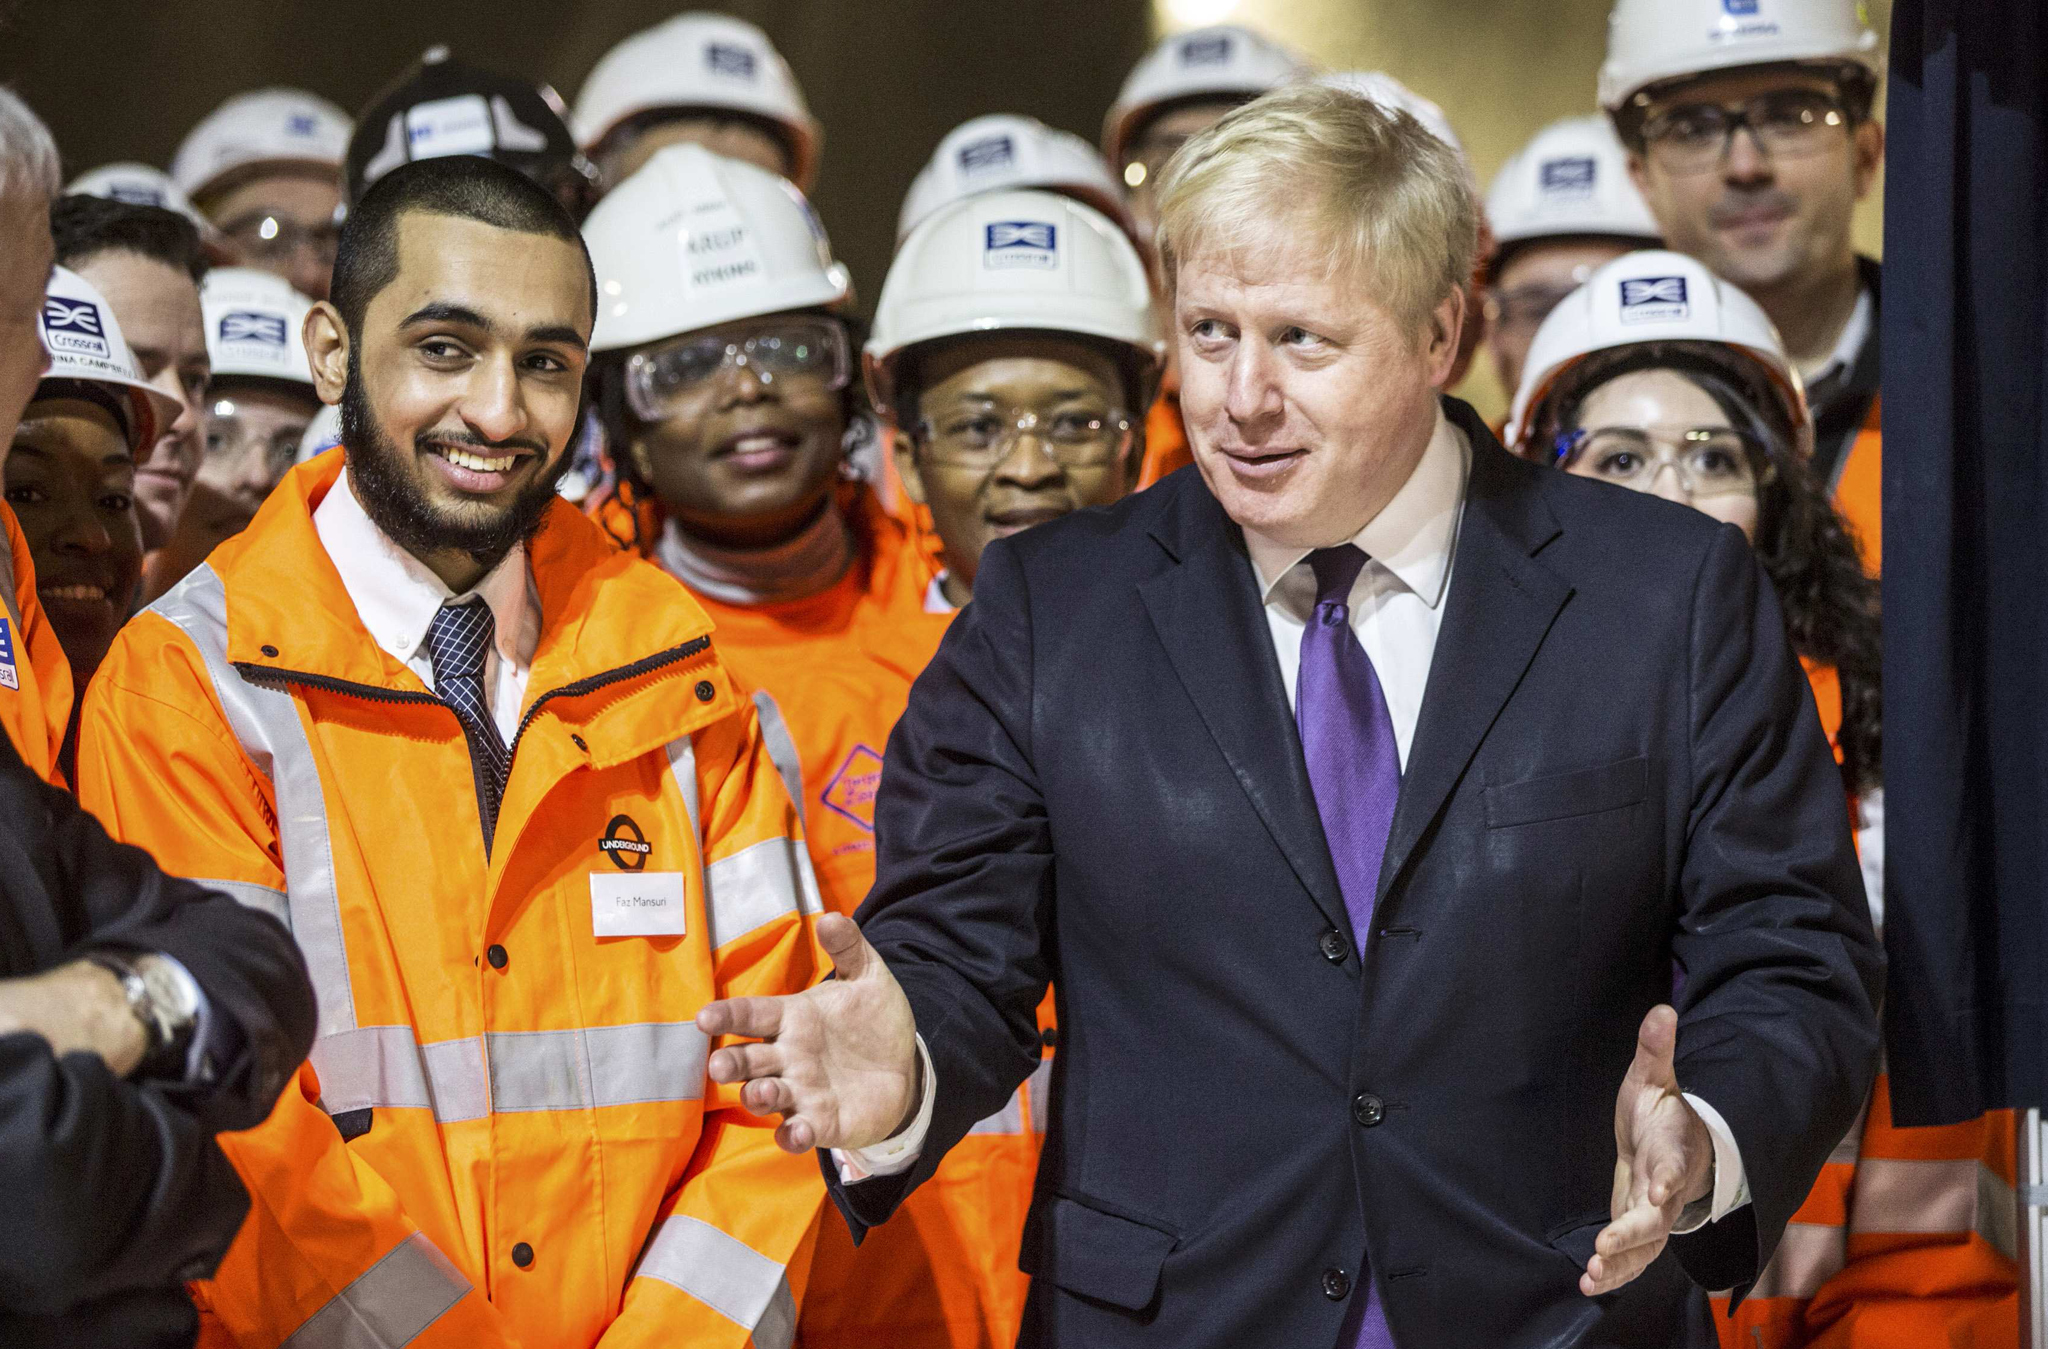 London mayor Boris Johnson attends Britain's Queen Elizabeth formal unveiling of the new logo for Crossrail, which is to be named the Elizabeth line, at the construction site of the Bond Street station in central London...London mayor Boris Johnson attends Britain's Queen Elizabeth formal unveiling of the new logo for Crossrail, which is to be named the Elizabeth line, at the construction site of the Bond Street station in central London, February 23, 2016.   REUTERS/Richard Pohle/Pool